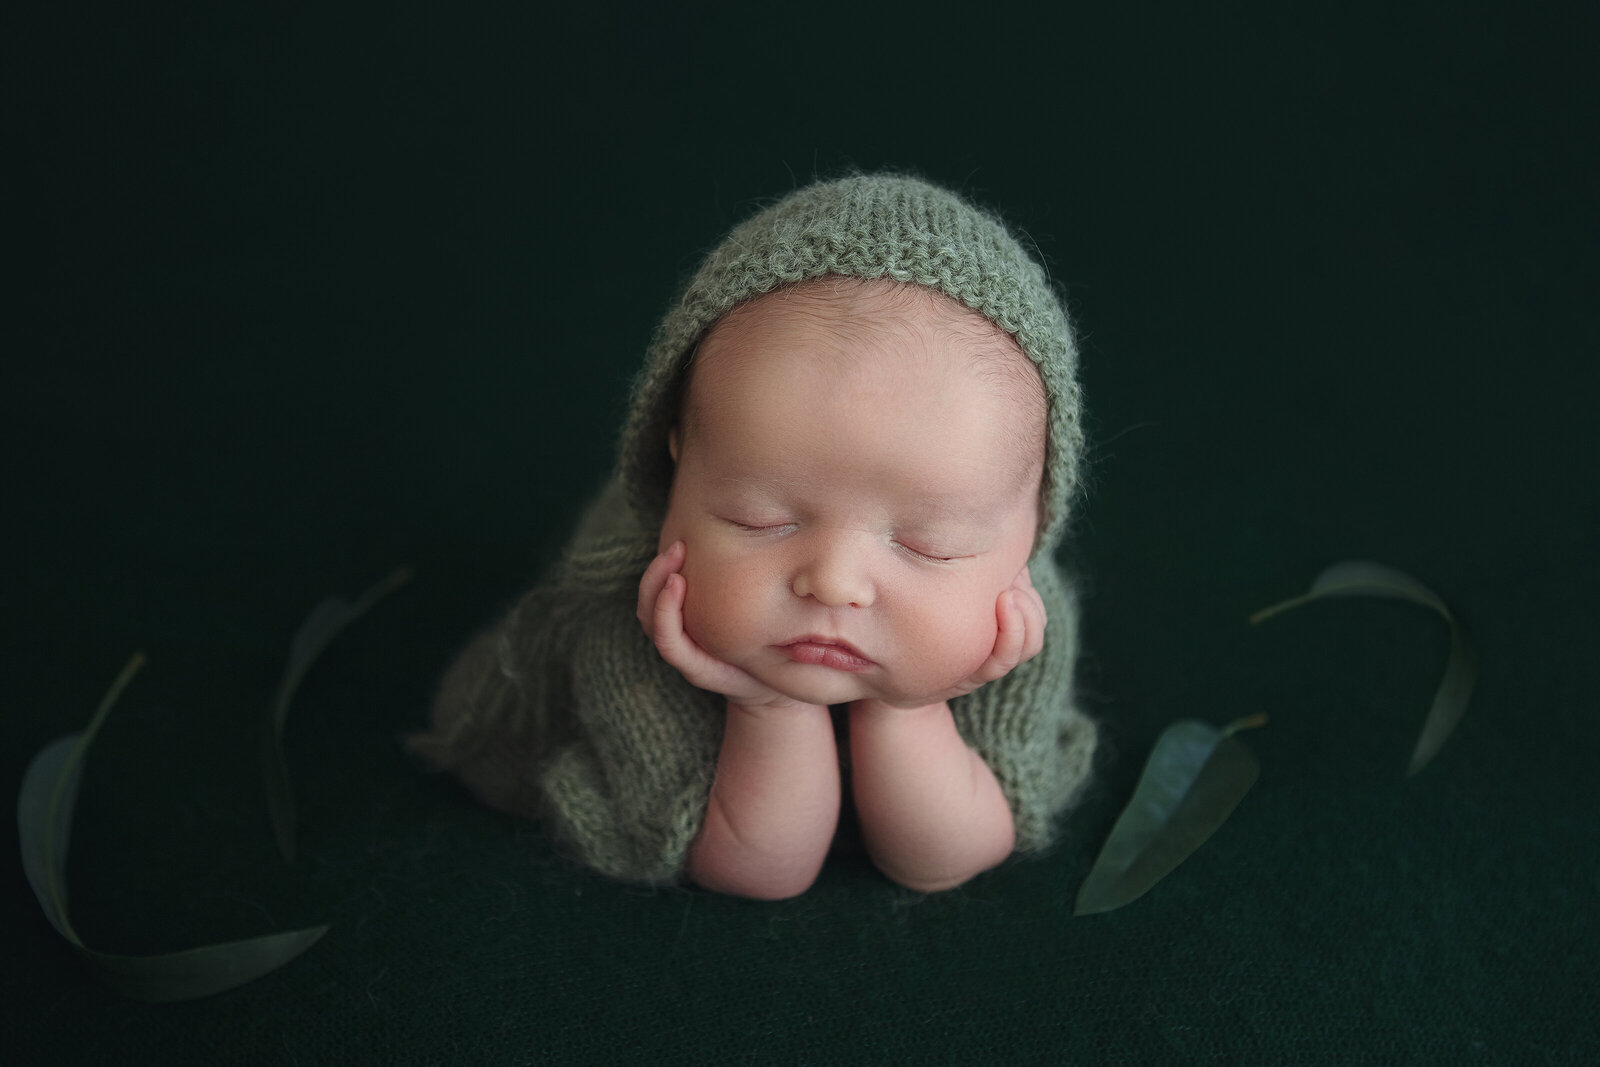 Professional studio portrait of newborn baby posed asleep, green props